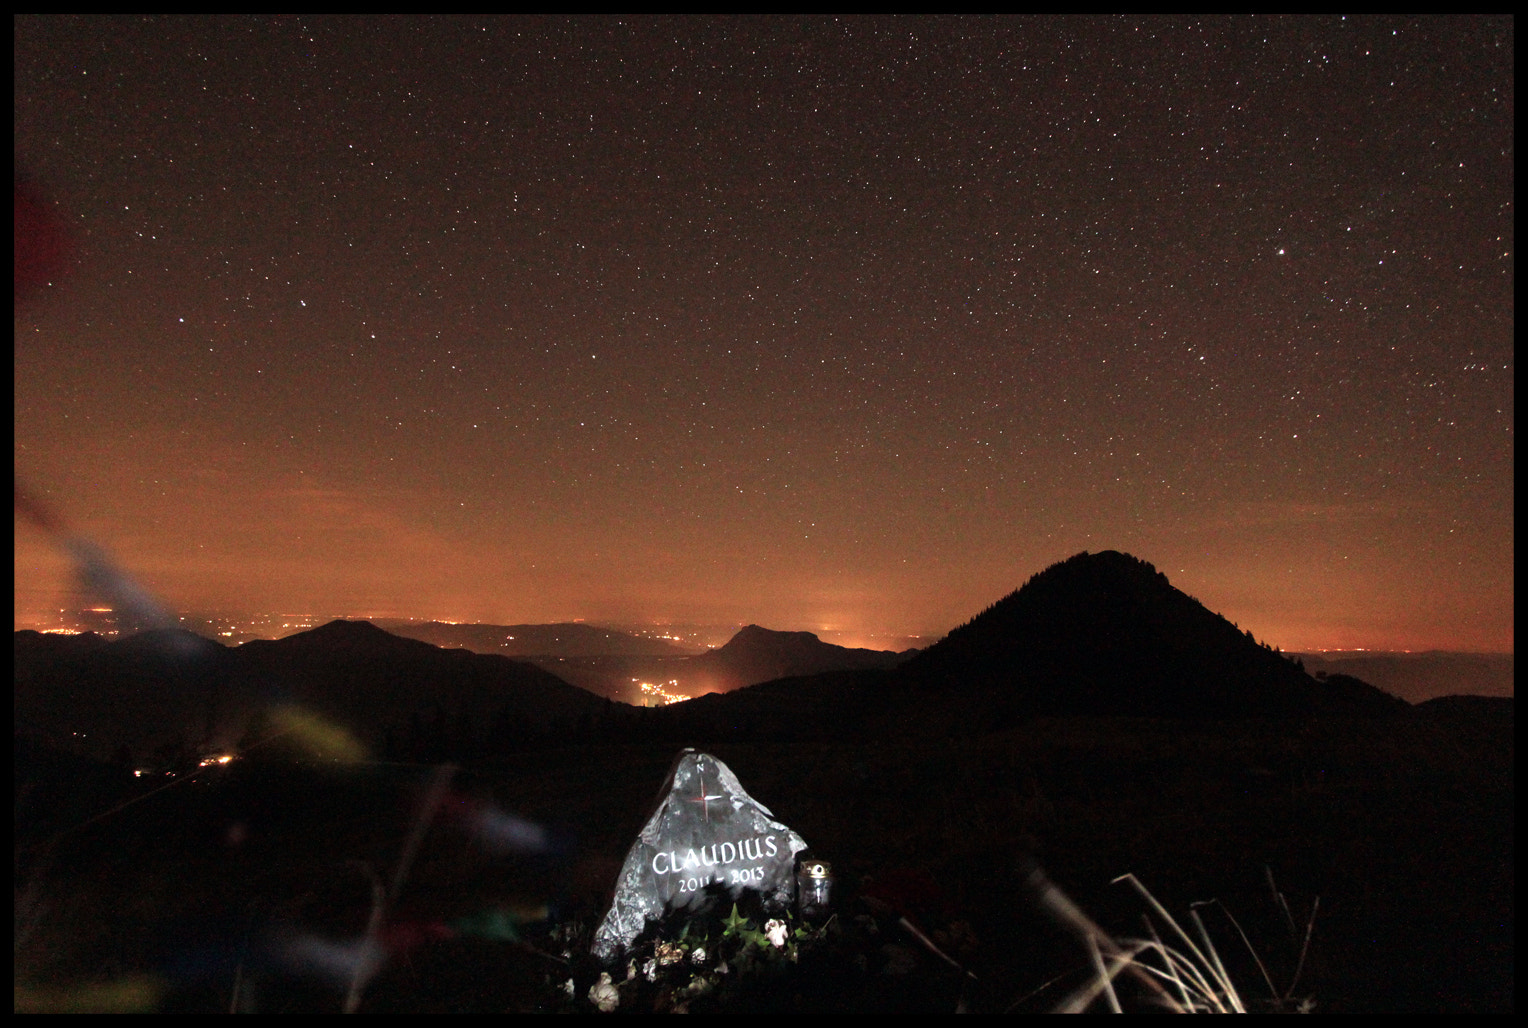 Photograph The CLAUDIUS Memorial Rock at Night by Mex Brunner on 500px